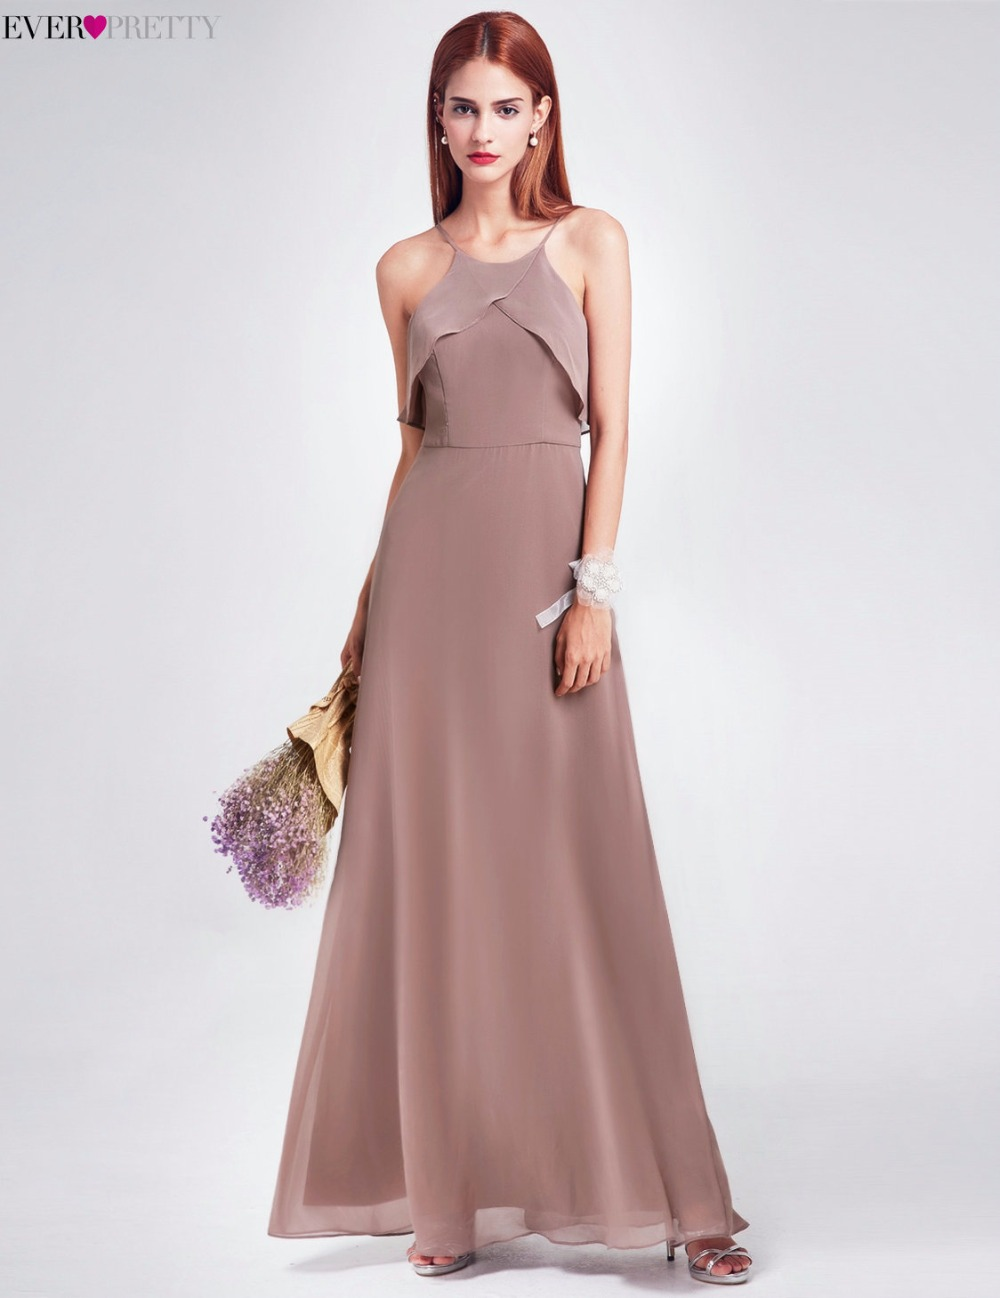 Elegant bridesmaid dress ever pretty ep07130 long backless elegant bridesmaid dress ever pretty ep07130 long backless spaghetti straps charcoal wedding occasion gowns 2017 new girl dress in bridesmaid dresses from ombrellifo Images